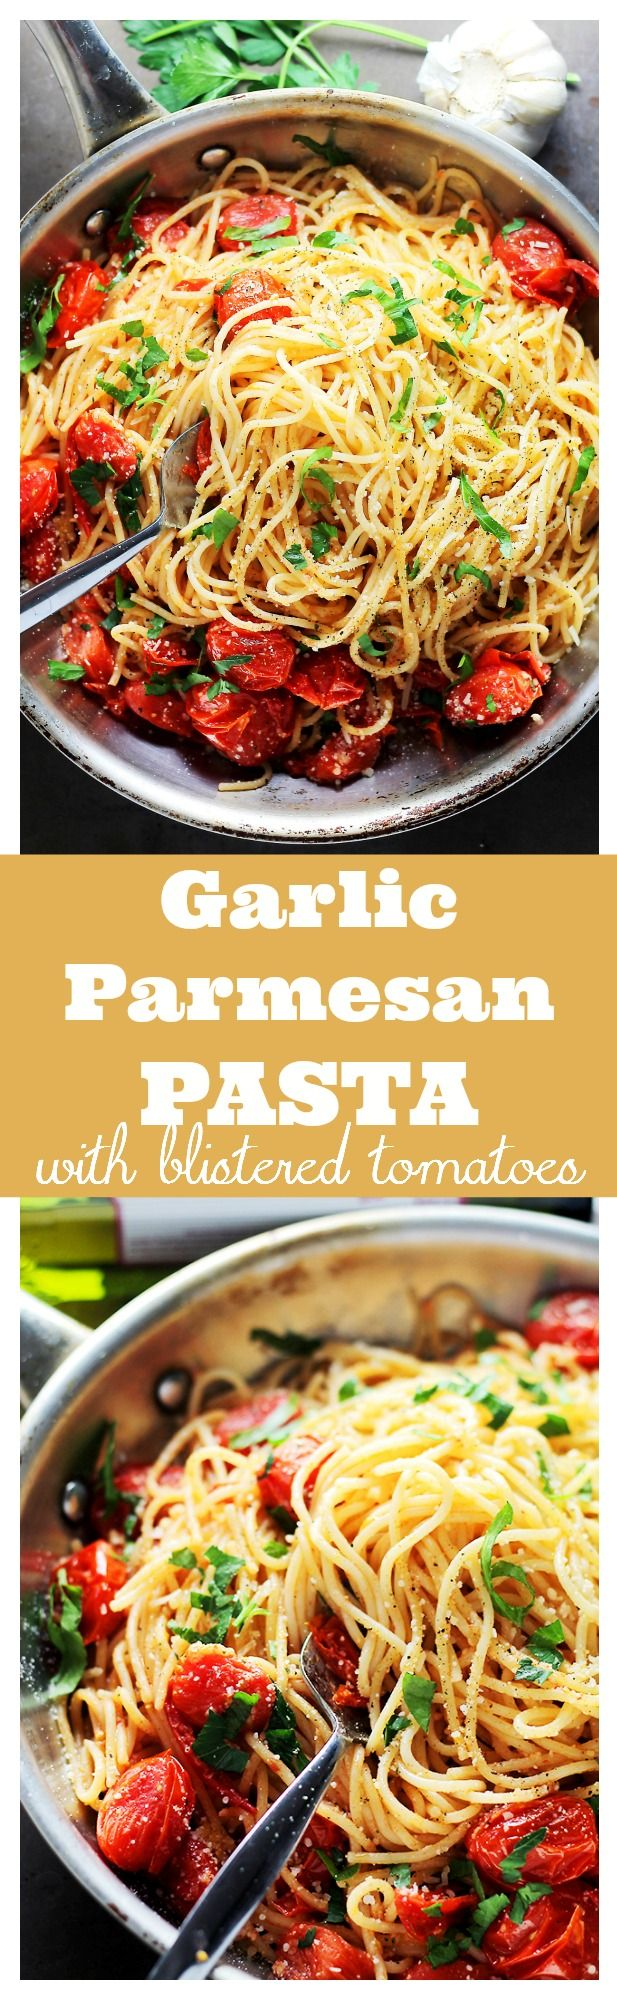 Garlic Parmesan Spaghetti with Blistered Tomatoes -  Tossed in roasted garlic oil, blistered tomatoes and a handful of parmesan cheese, these easy, 20-minute Garlic Parmesan Spaghetti are your best bet! YET!